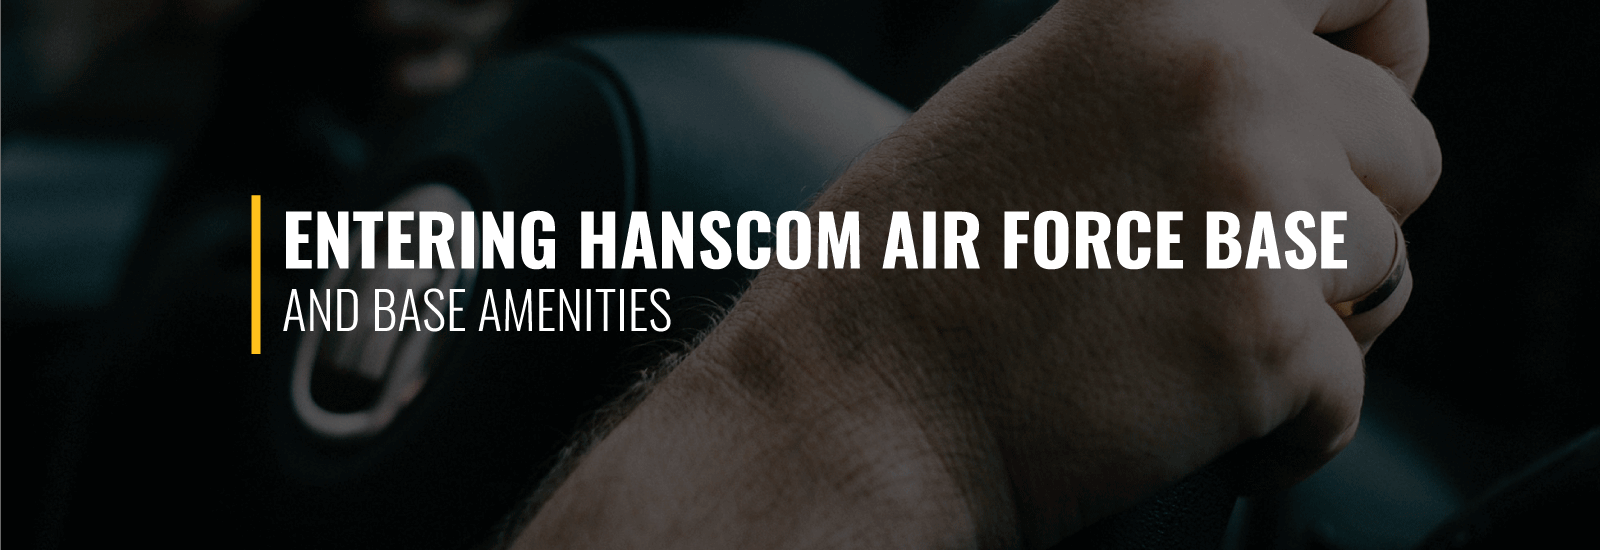 Entering Hanscom AFB and Base Amenities